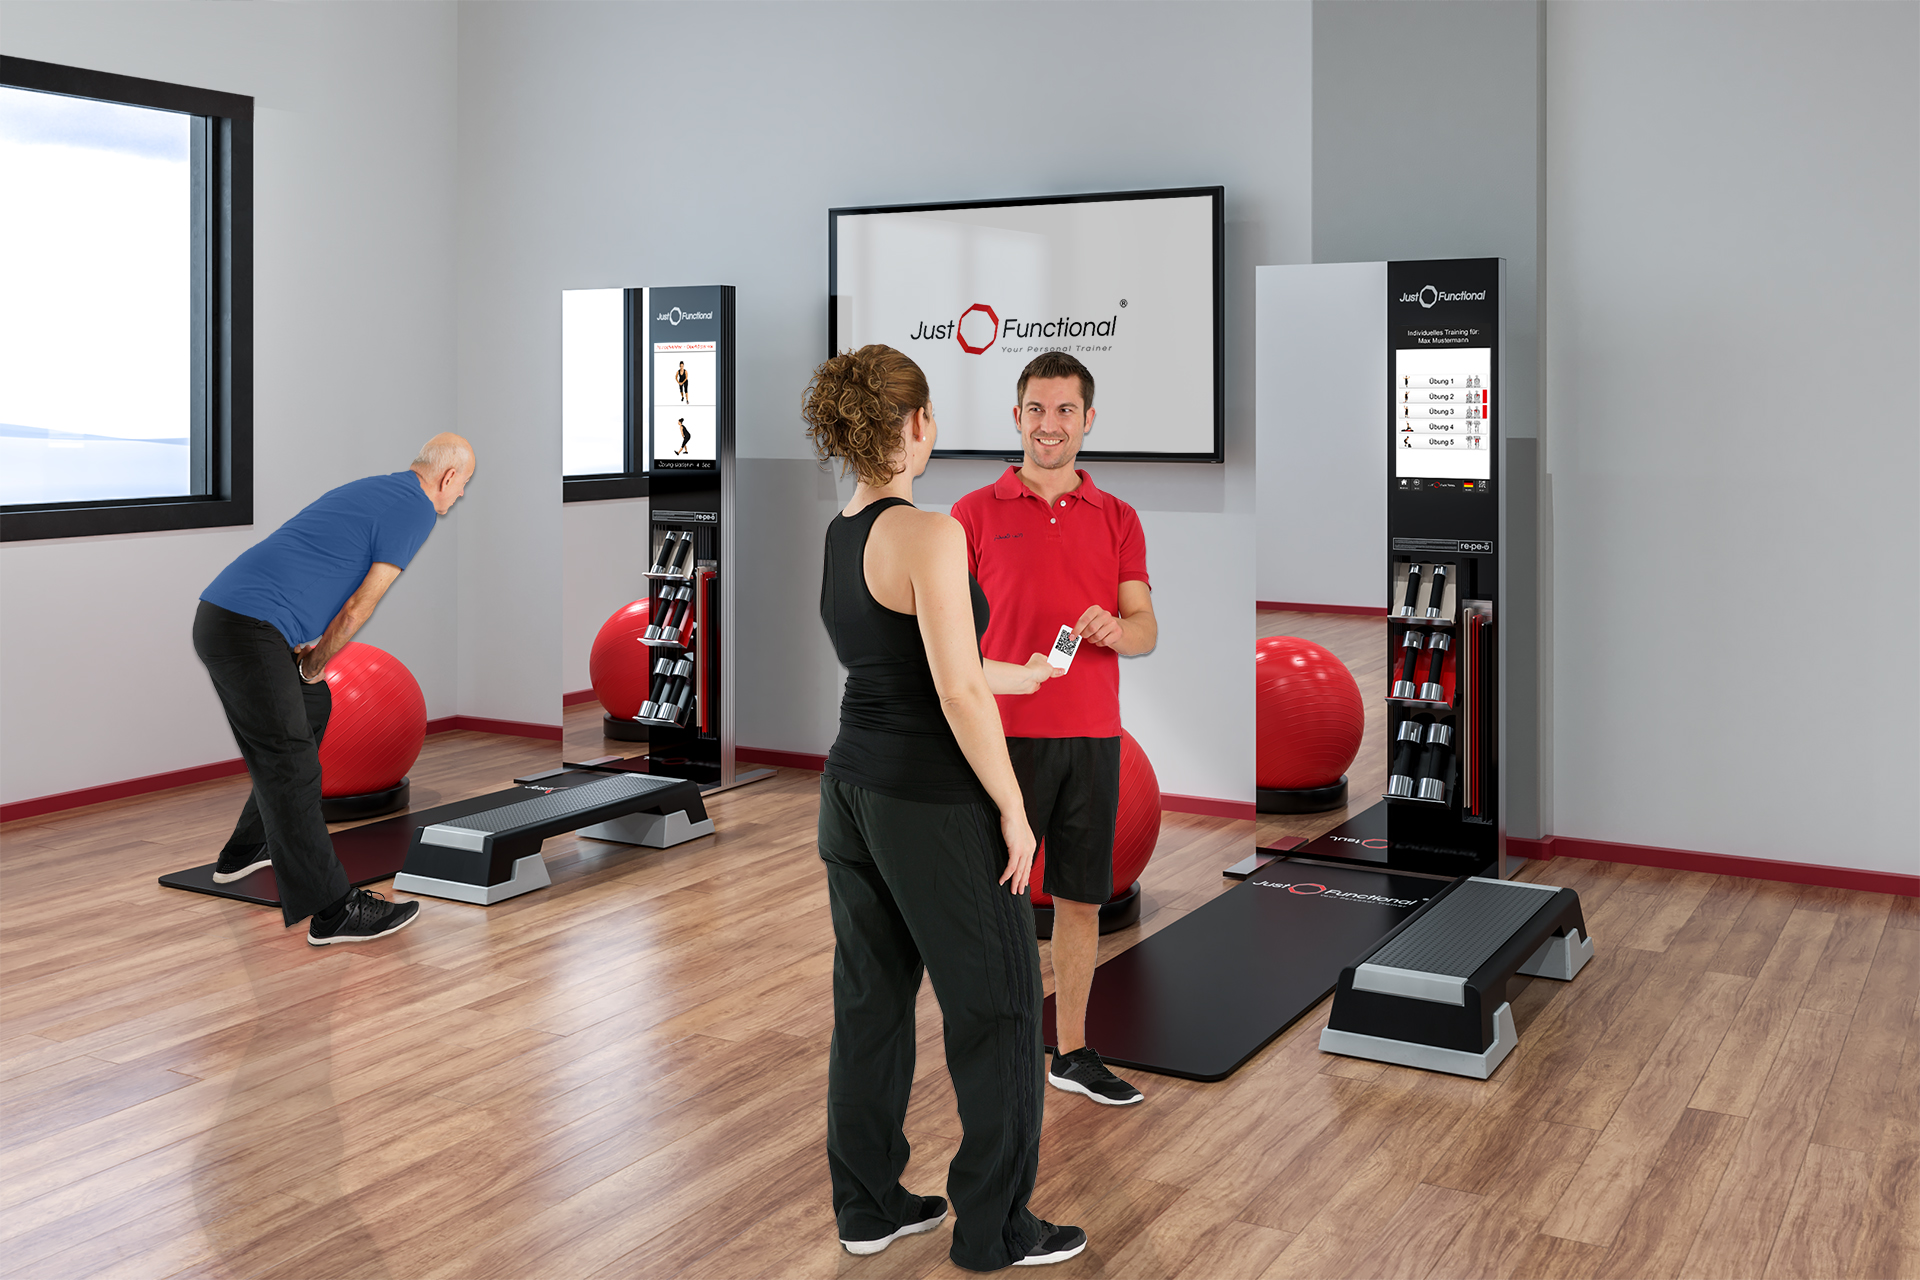 Virtual and functional training station MoveOne